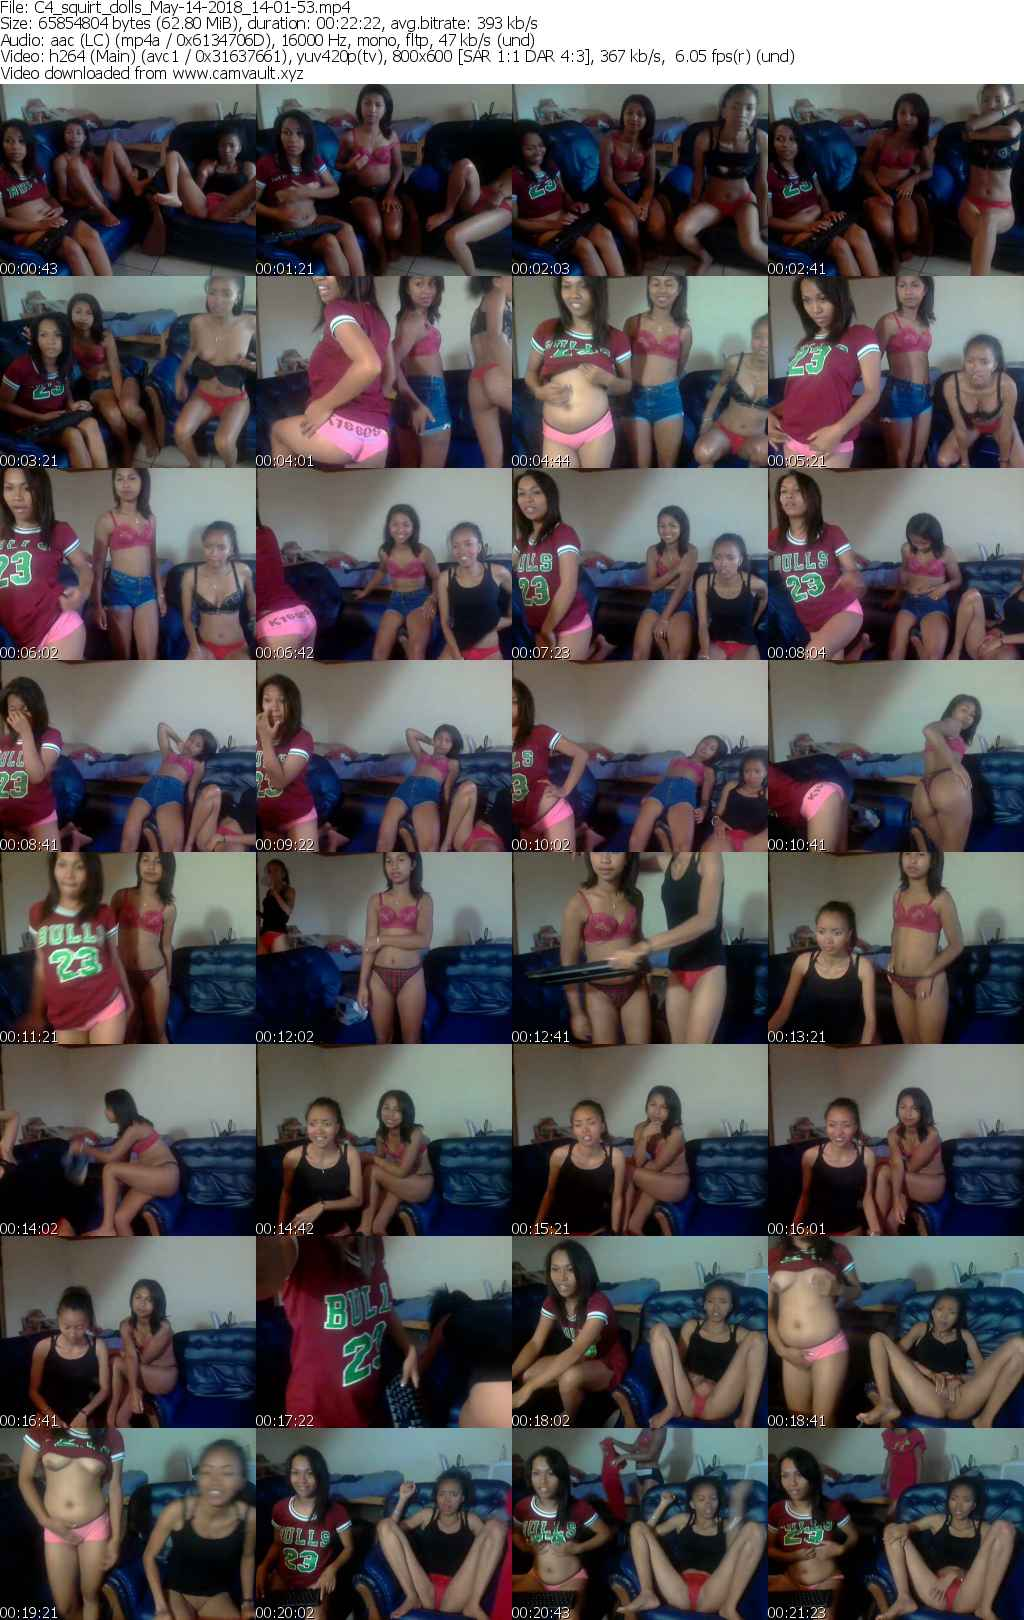 Video preview for model squirt_dolls